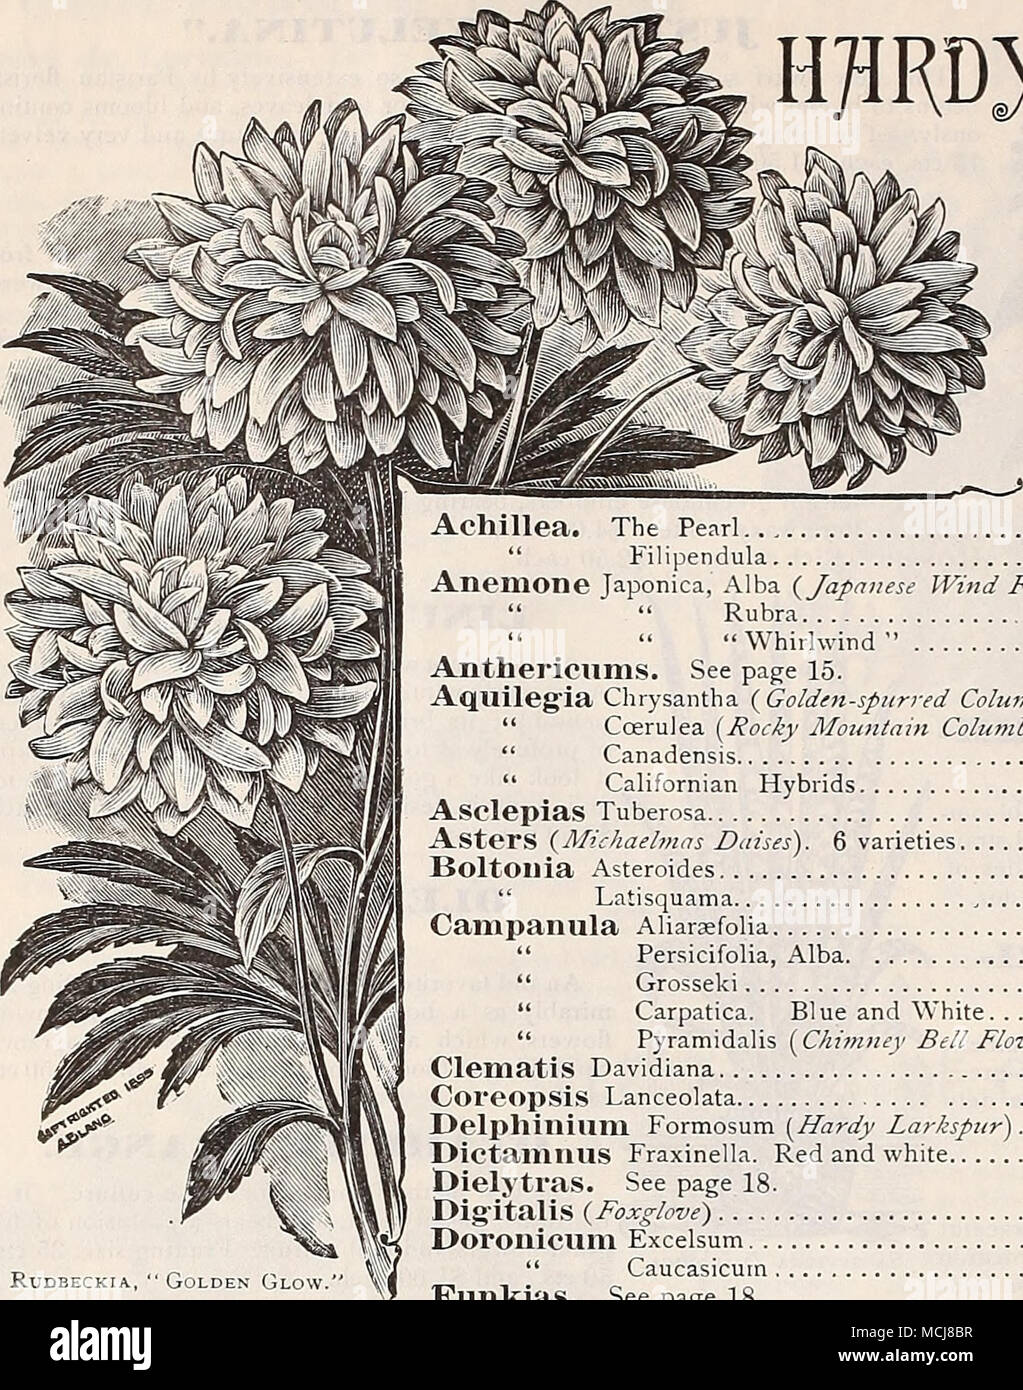 """. Preer's Autumn Catalogue, 1898. HflRDy PEKENNIH&S For Autumn Planting. w^c The following is a select list of Hardy Perennials, all of which can be planted during the Fall months with perfect success. For complete list and descriptions see our Garden Calender for 1898. RuDBECKIA The Pearl """" Filipendula Anemone Japonica, Alba {Japanese Wind Flower). Rubra """" """" """" Whirlwind """" Anthericums. See page 15. Aquileg'ia Chrysantha {Golden-spurred Columbine) . """" Ccerulea (Rocky Mountain Columbine') . """" Canadensis """" Californian Hybrids Aselepias Tuberosa Asters { - Stock Image"""